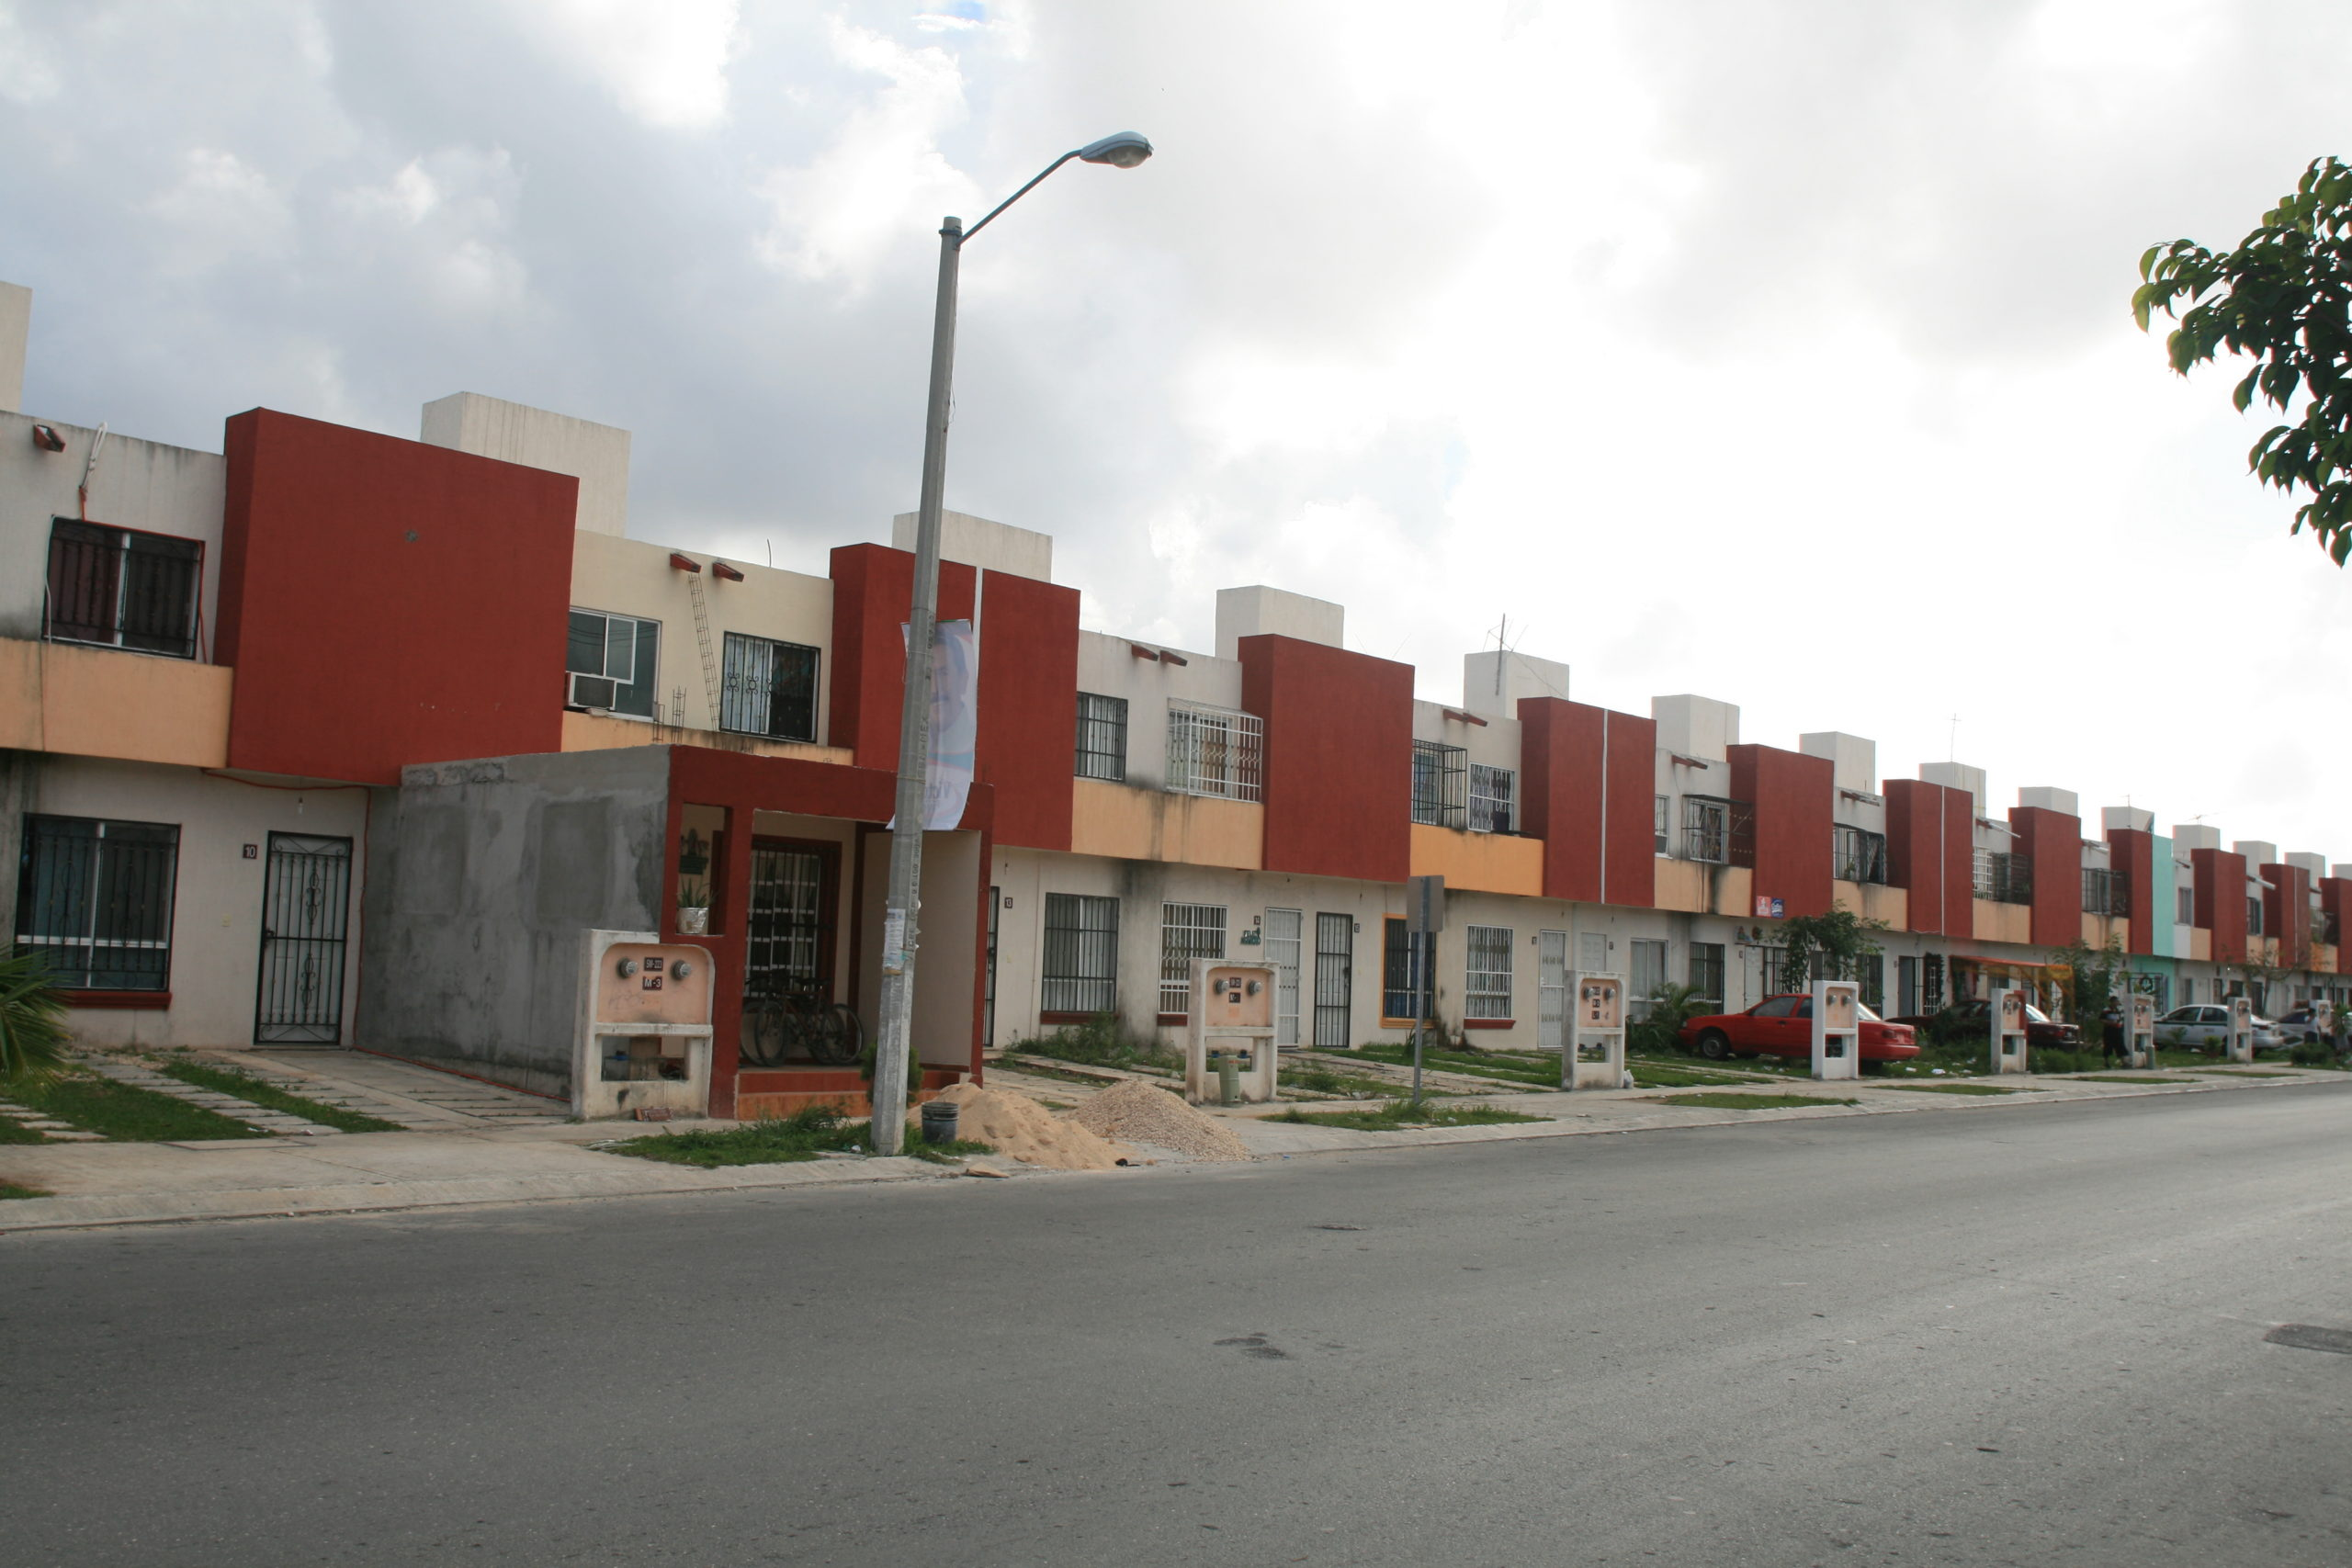 Photograph of a street with houses